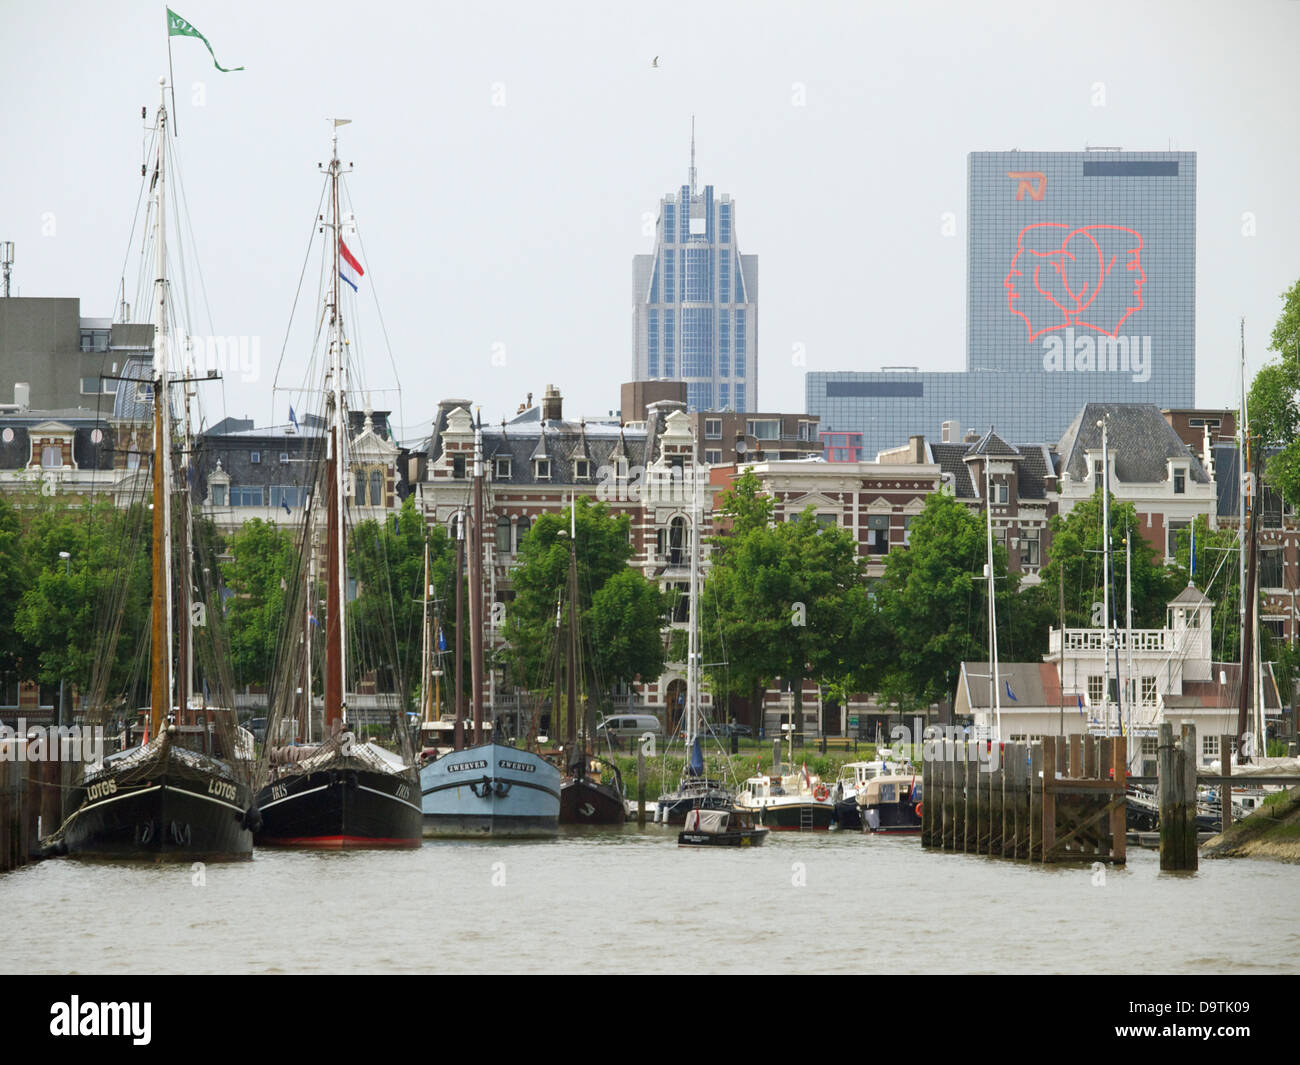 Vintage sailing ships and yachts in the city centre of Rotterdam, the Netherlands - Stock Image